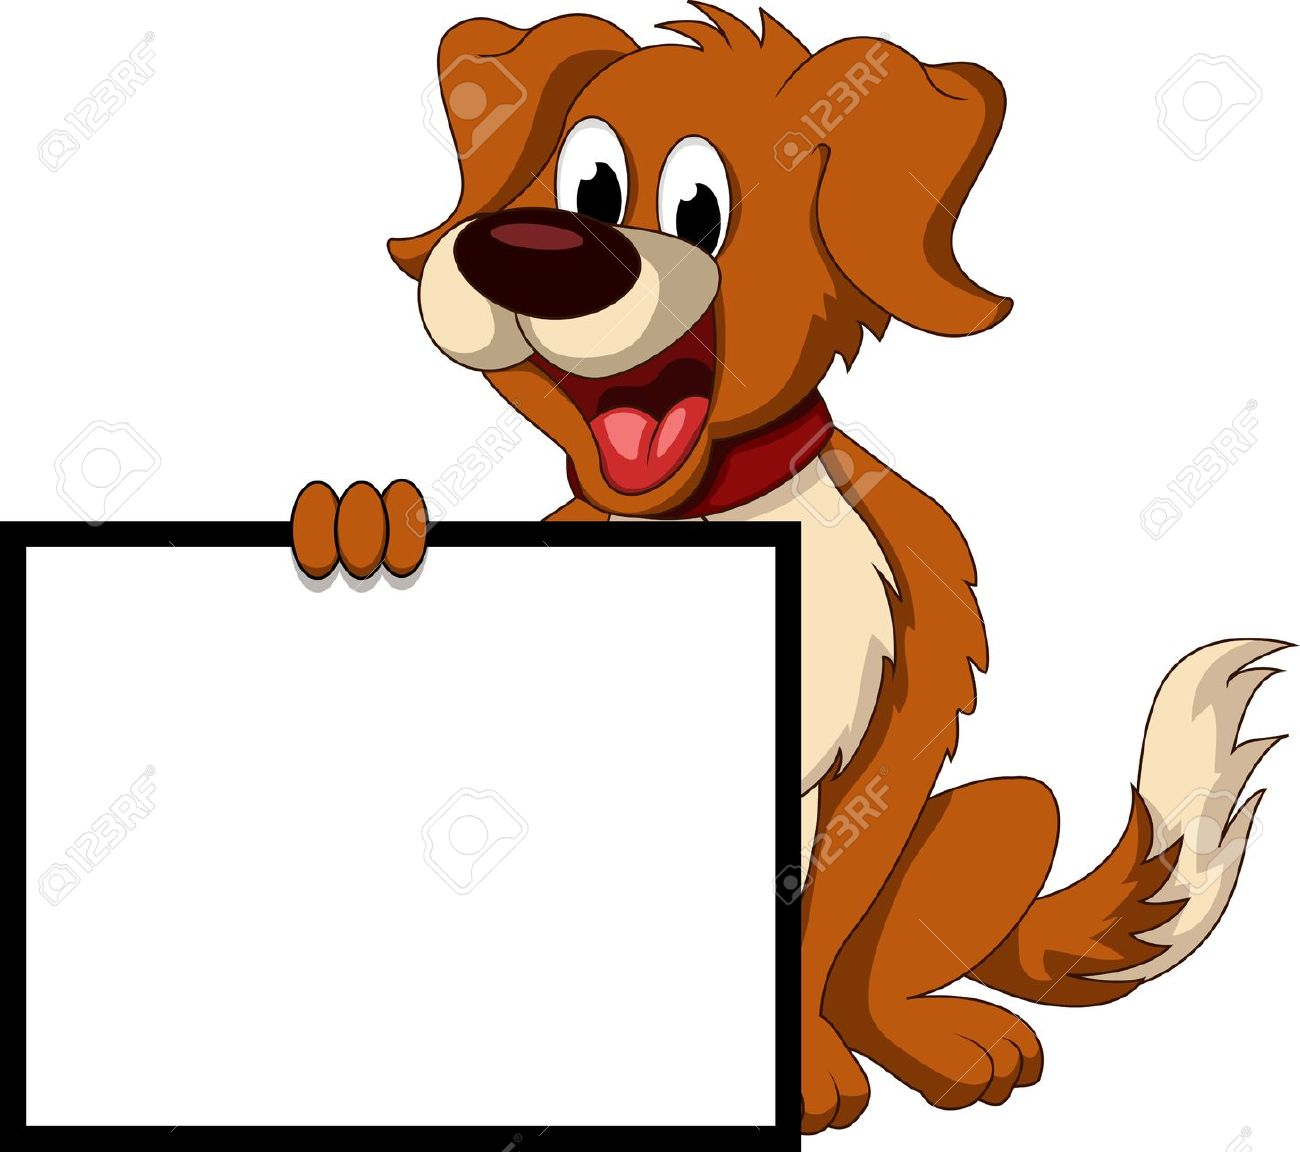 Dog holding sign clipart.